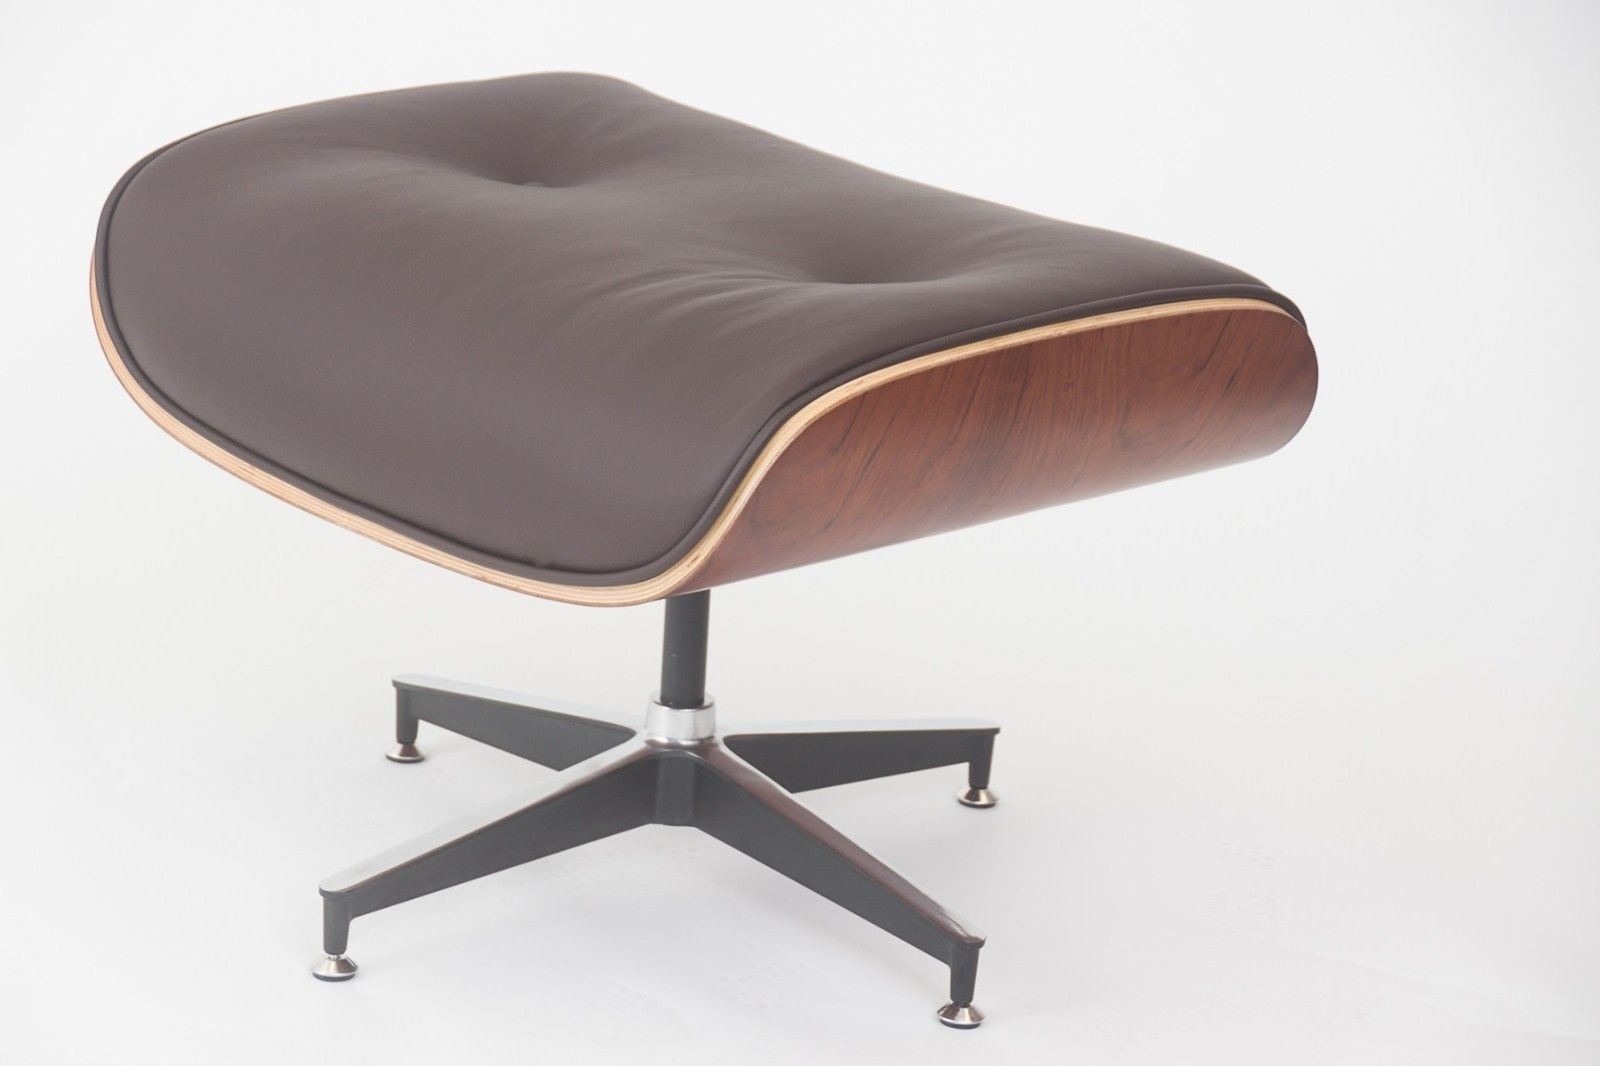 #49 - Eames Style Walnut Lounge Chair and Ottoman Set in Brown Top Grain Leather